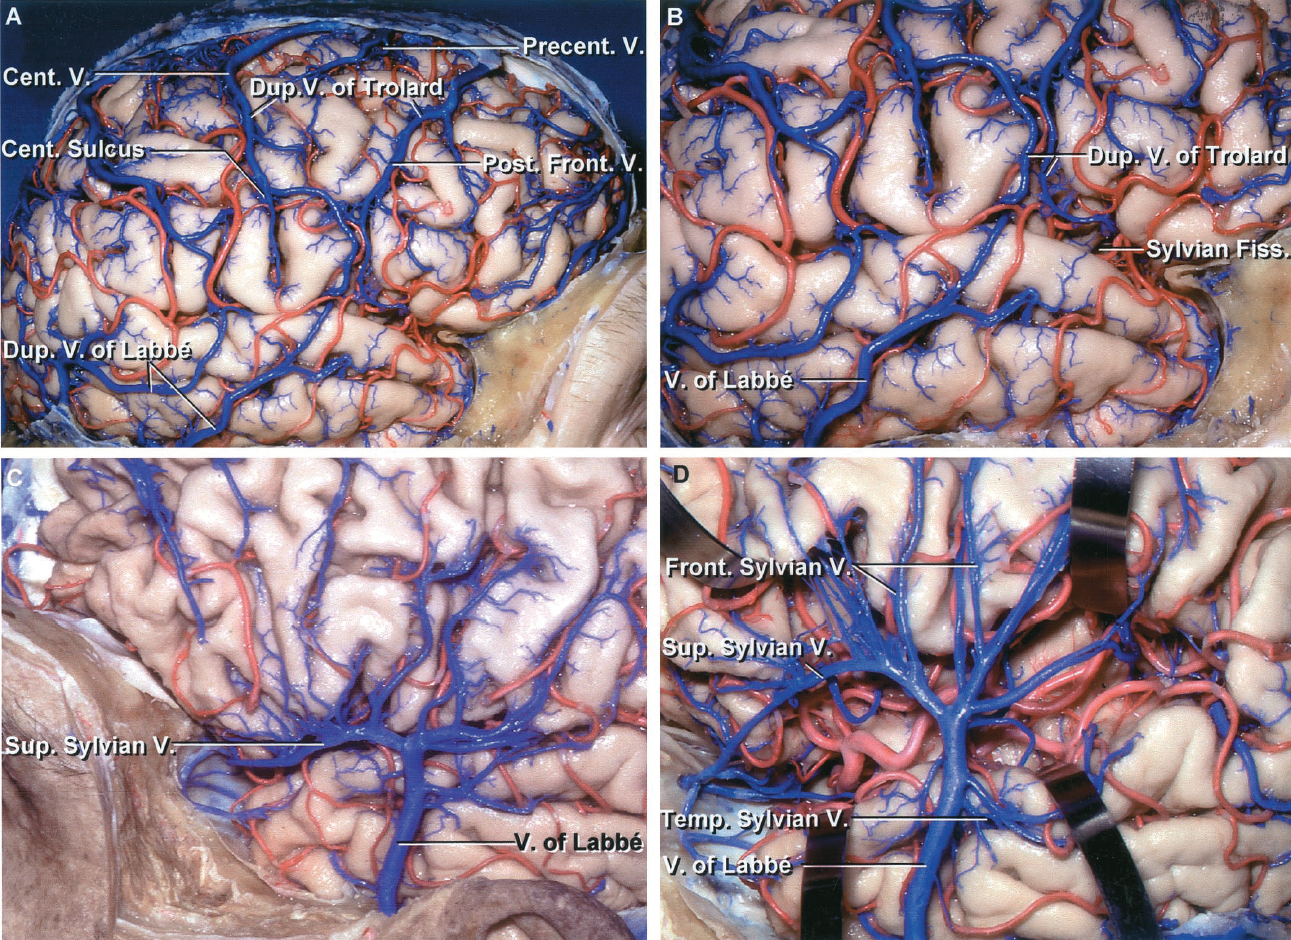 FIGURE 4.12. A-D. Lateral view. Comparison of drainage pattern along the sylvian fissure on the right side (A and B) and left side (C and D) of the same brain. A, right lateral view. There is no significant superficial sylvian vein. The veins draining the frontal and parietal areas are relatively evenly dispersed over the frontal and parietal lobes and drain predominantly into the superior sagittal sinus. There are two, or duplicate, veins of nearly equal size that cross from the sylvian fissure to the transverse sinus and fit the description of a vein of Labbé. Central and posterior frontal veins of approximately the same size connect the sylvian fissure and superior sagittal sinus, and together constitute a duplicate vein of Trolard. The lower part of the central vein passes along the central sulcus. B, enlarged view of sylvian fissure. Duplicate veins of Labbé and Trolard drain much of the area along the sylvian fissure. C, left side. There is a large superficial sylvian vein that has minimal connections with the superior sagittal sinus; however, a significant part of the drainage from this area is directed through a vein of Labbé that crosses the midtemporal area. D, the sylvian fissure has been opened below the superficial sylvian vein that empties anteriorly into the sphenoparietal sinus coursing below the sphenoid ridge and posteriorly into a large vein of Labbé.